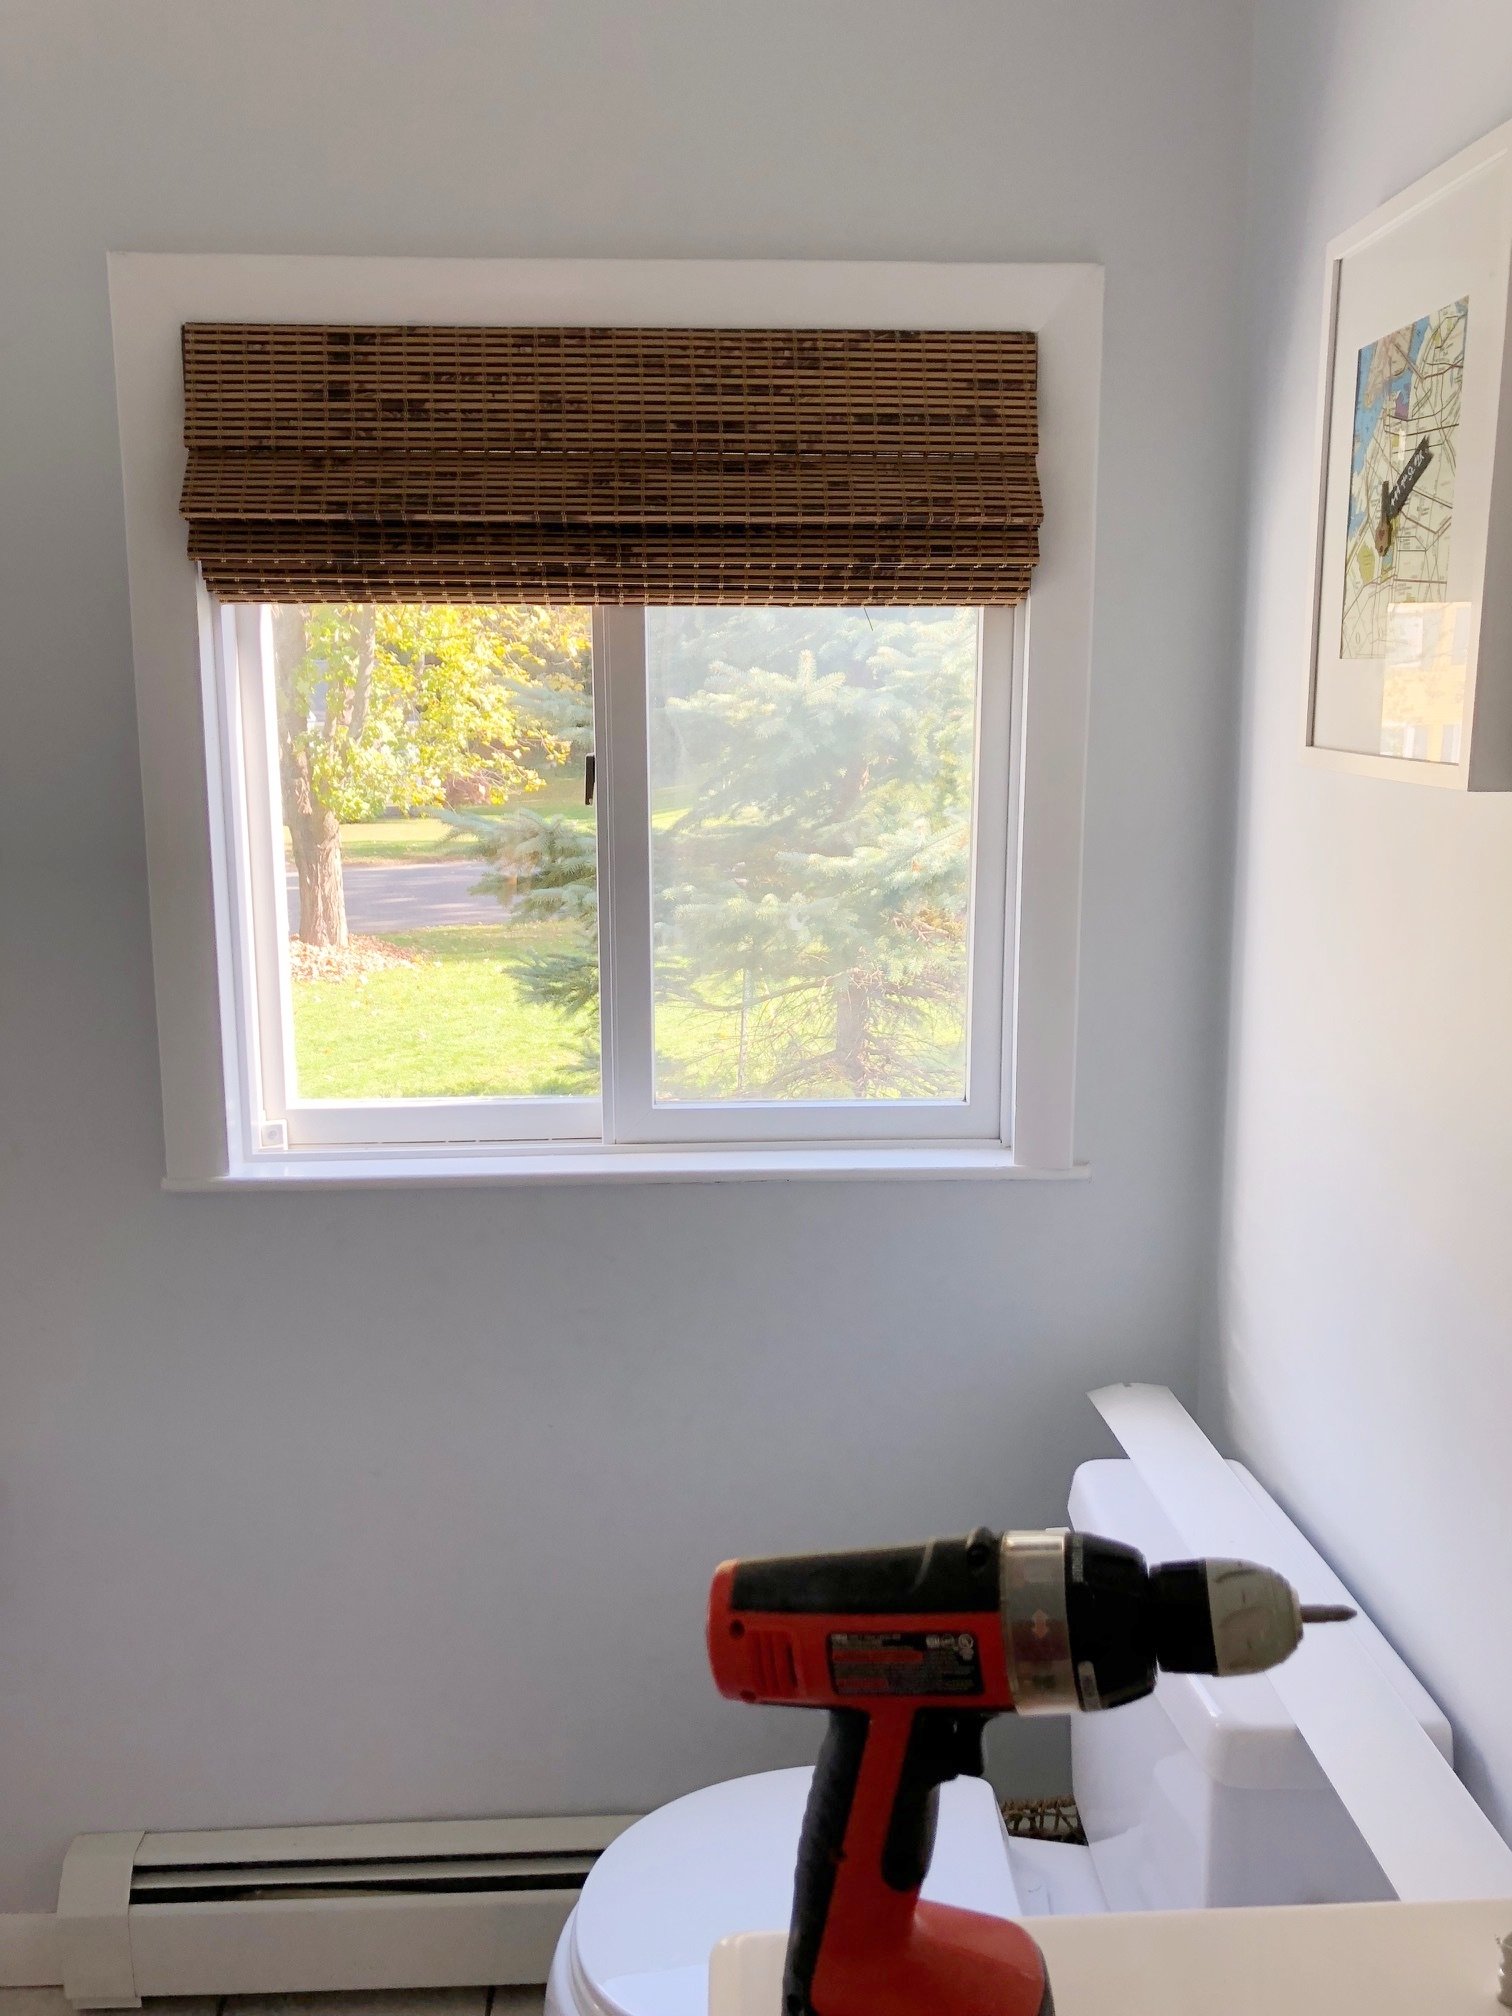 Gray Oak Studio - 2 Days 200 Dollars - Window Treatment Transformation